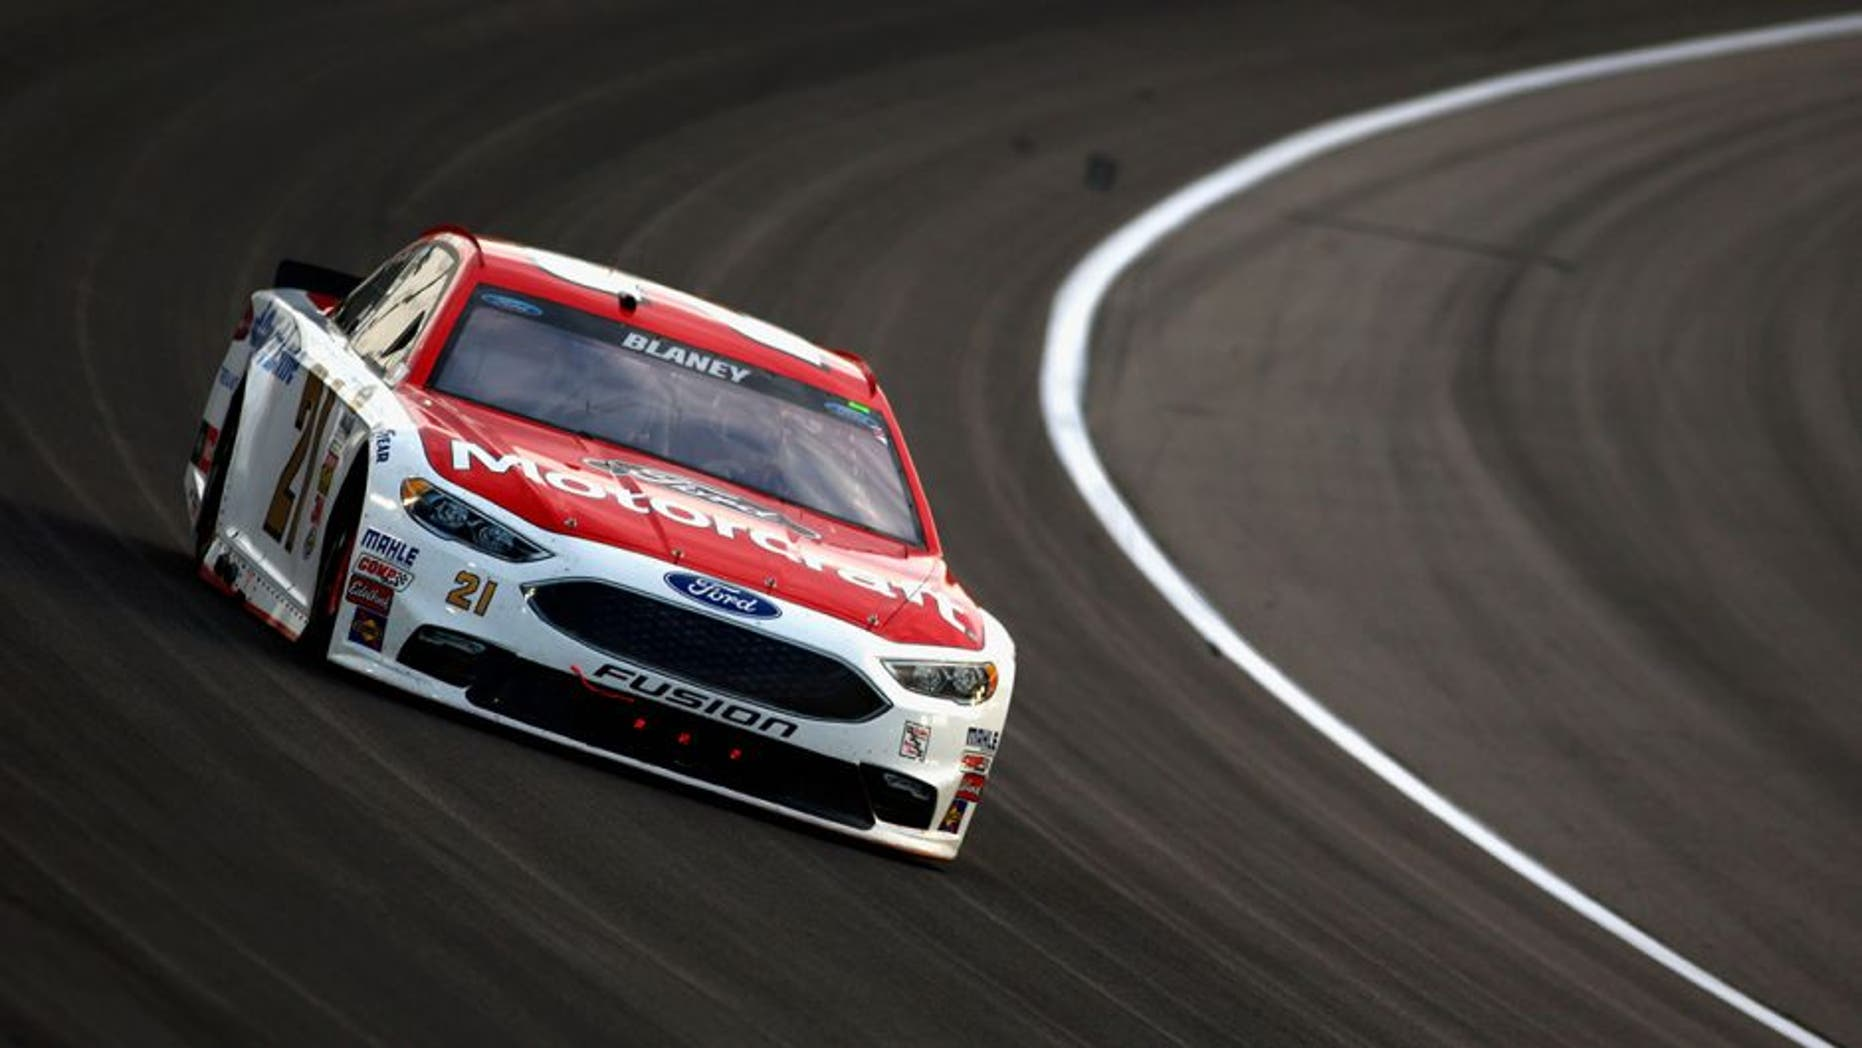 KANSAS CITY, KS - MAY 07: Ryan Blaney, driver of the #21 Motorcraft/Quick Lane Tire & Auto Center Ford, races during the NASCAR Sprint Cup Series Go Bowling 400 at Kansas Speedway on May 7, 2016 in Kansas City, Kansas. (Photo by Jamie Squire/Getty Images)